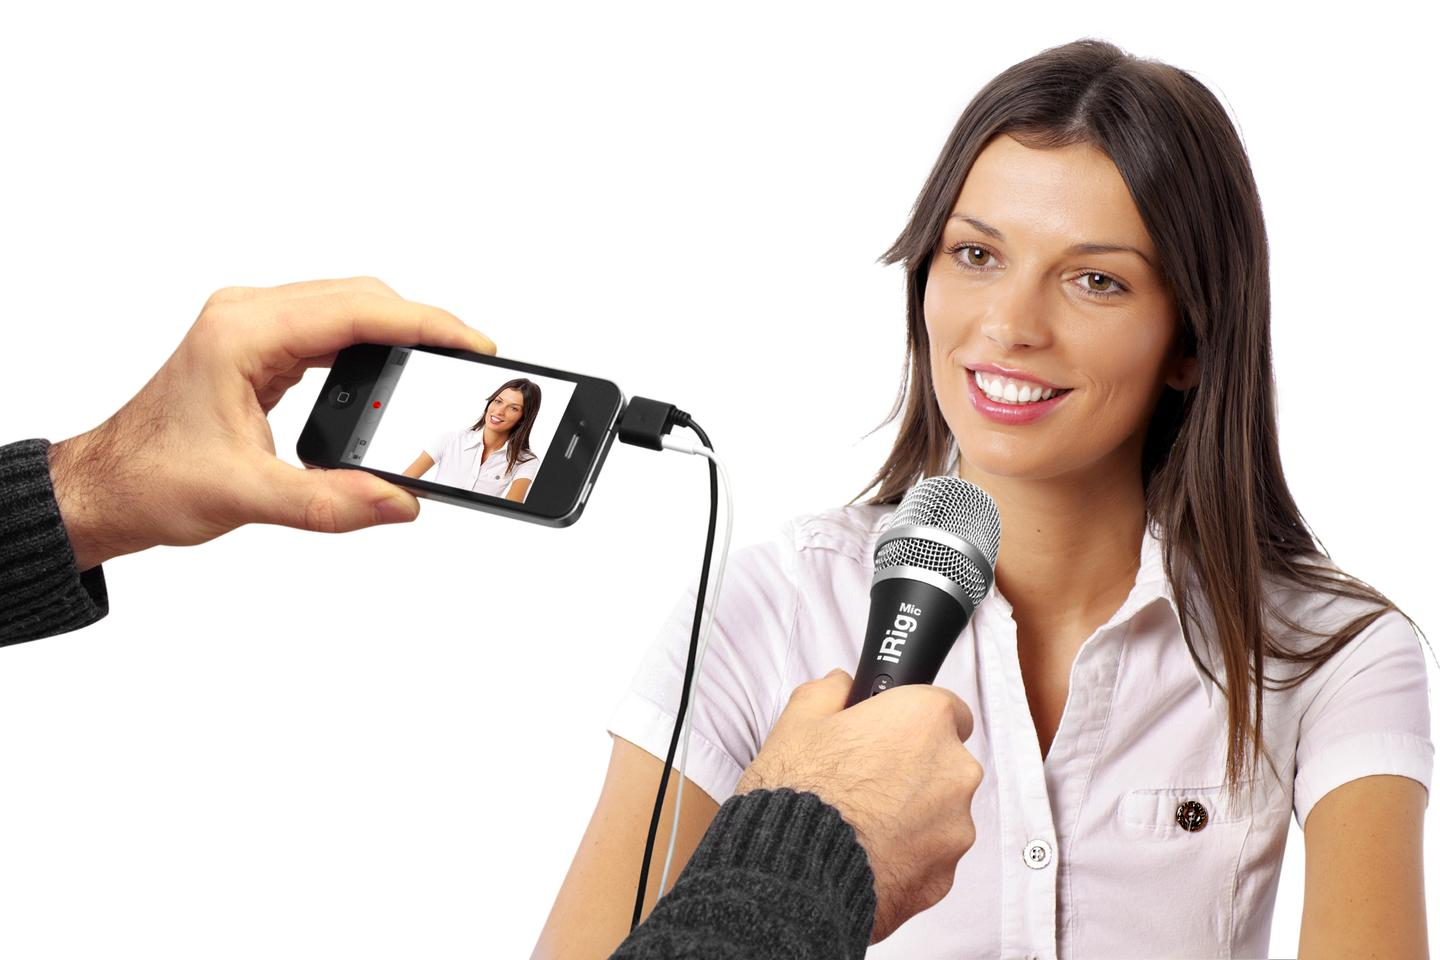 The iRig Mic could be used for video podcasts as well as vocal audio performances